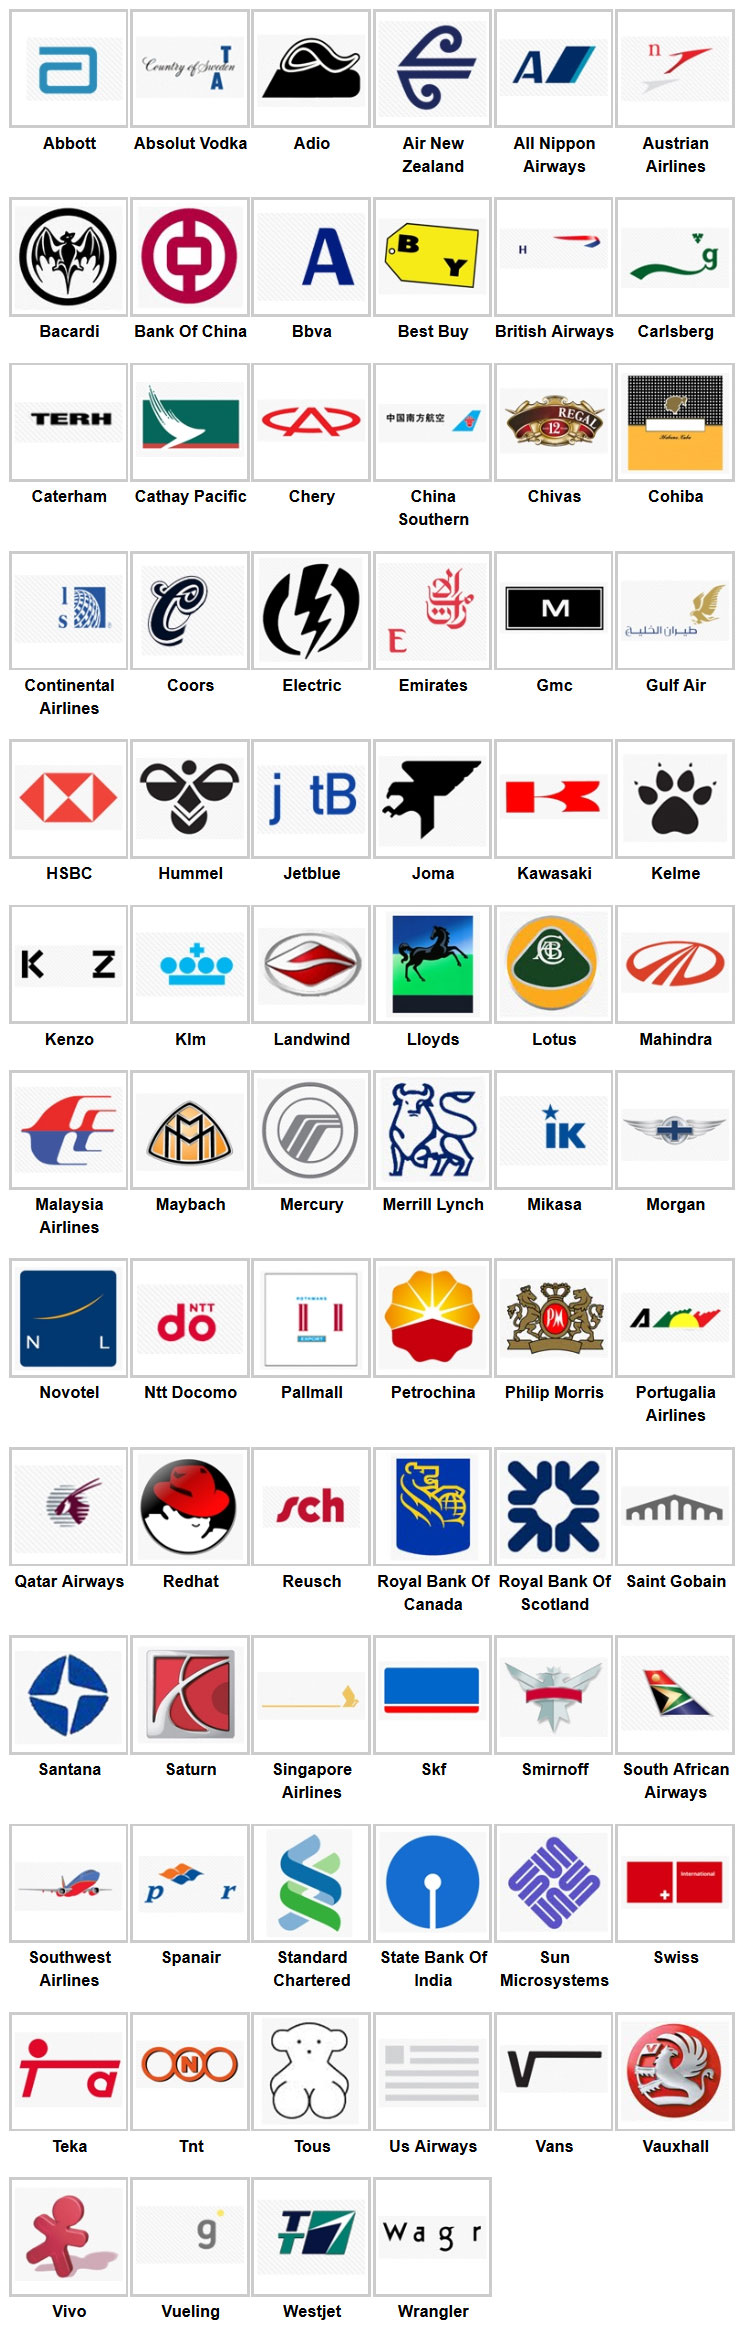 Logo quiz8 Logo quiz answers, Logo quiz, Game logo